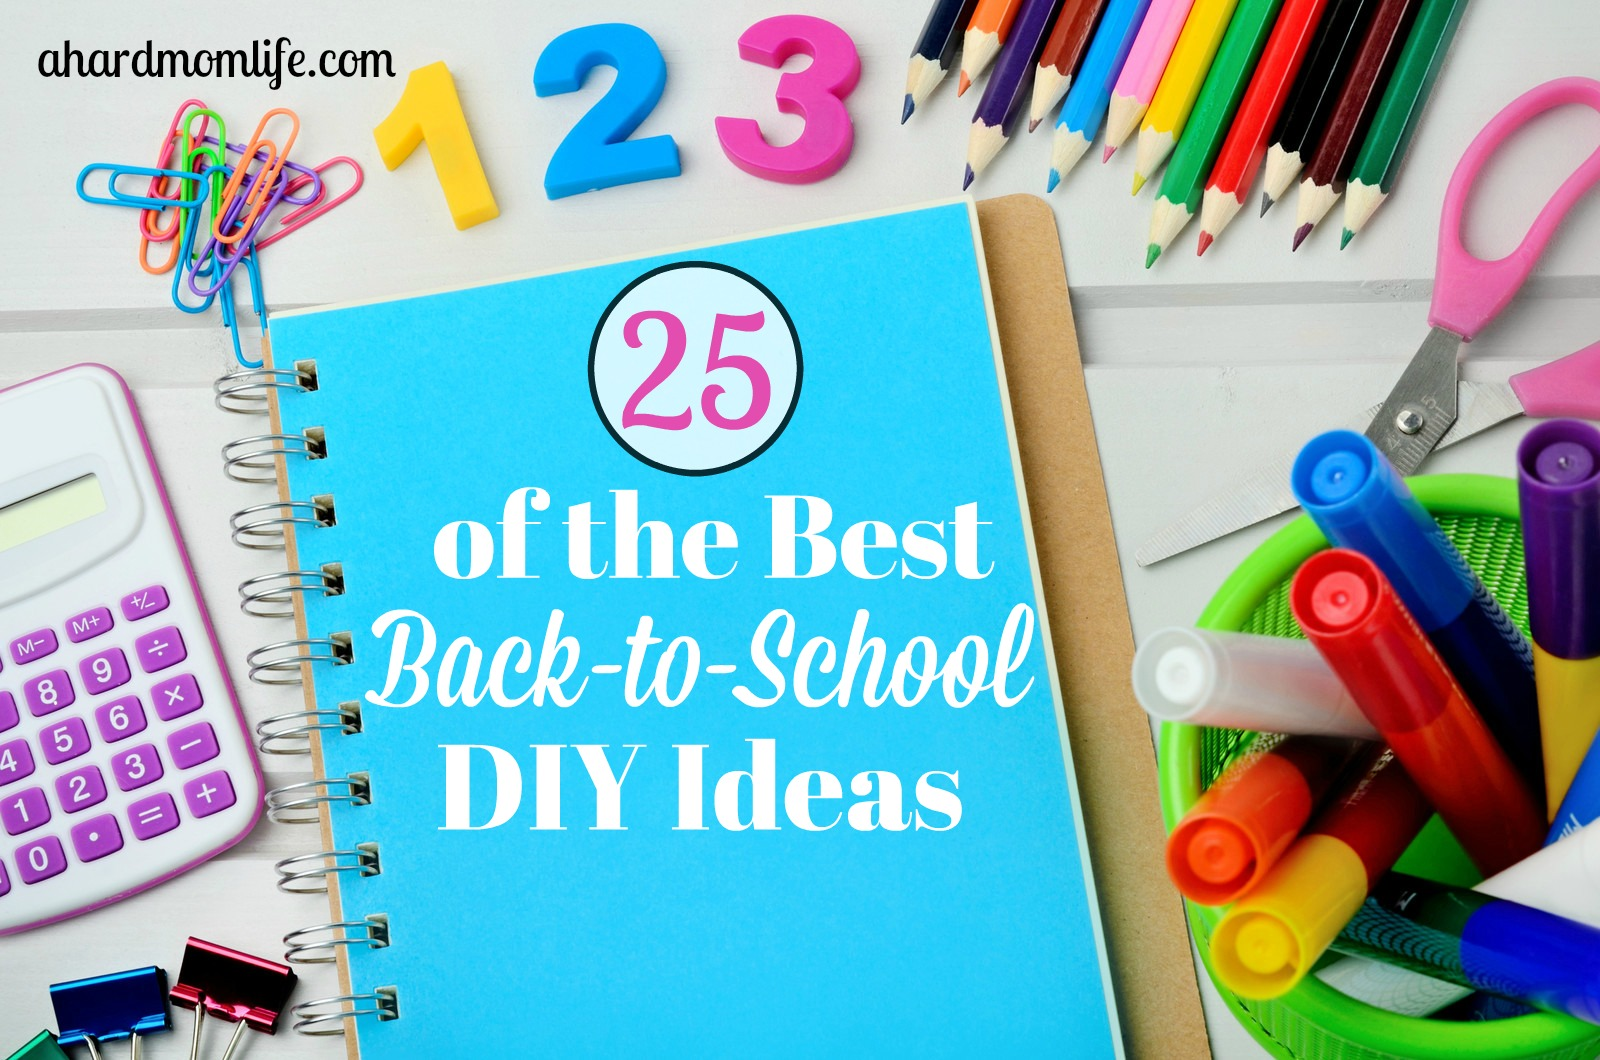 Want to do a DIY project with your kids before they head back to school? Here are 25 of the best back-to-school DIY ideas out there.